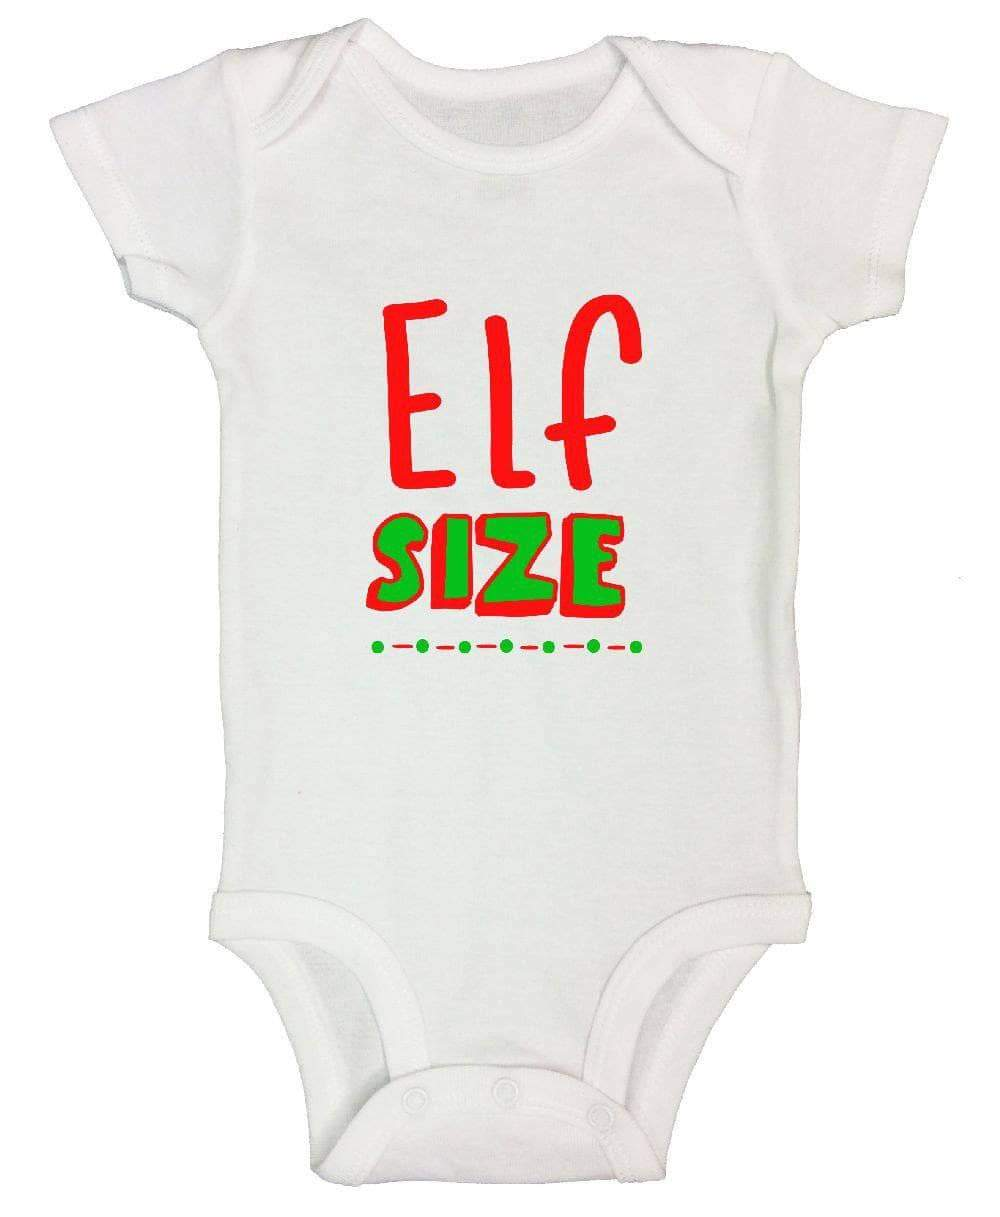 Elf Size FUNNY KIDS ONESIE Short Sleeve 0-3 Months Womens Tank Tops